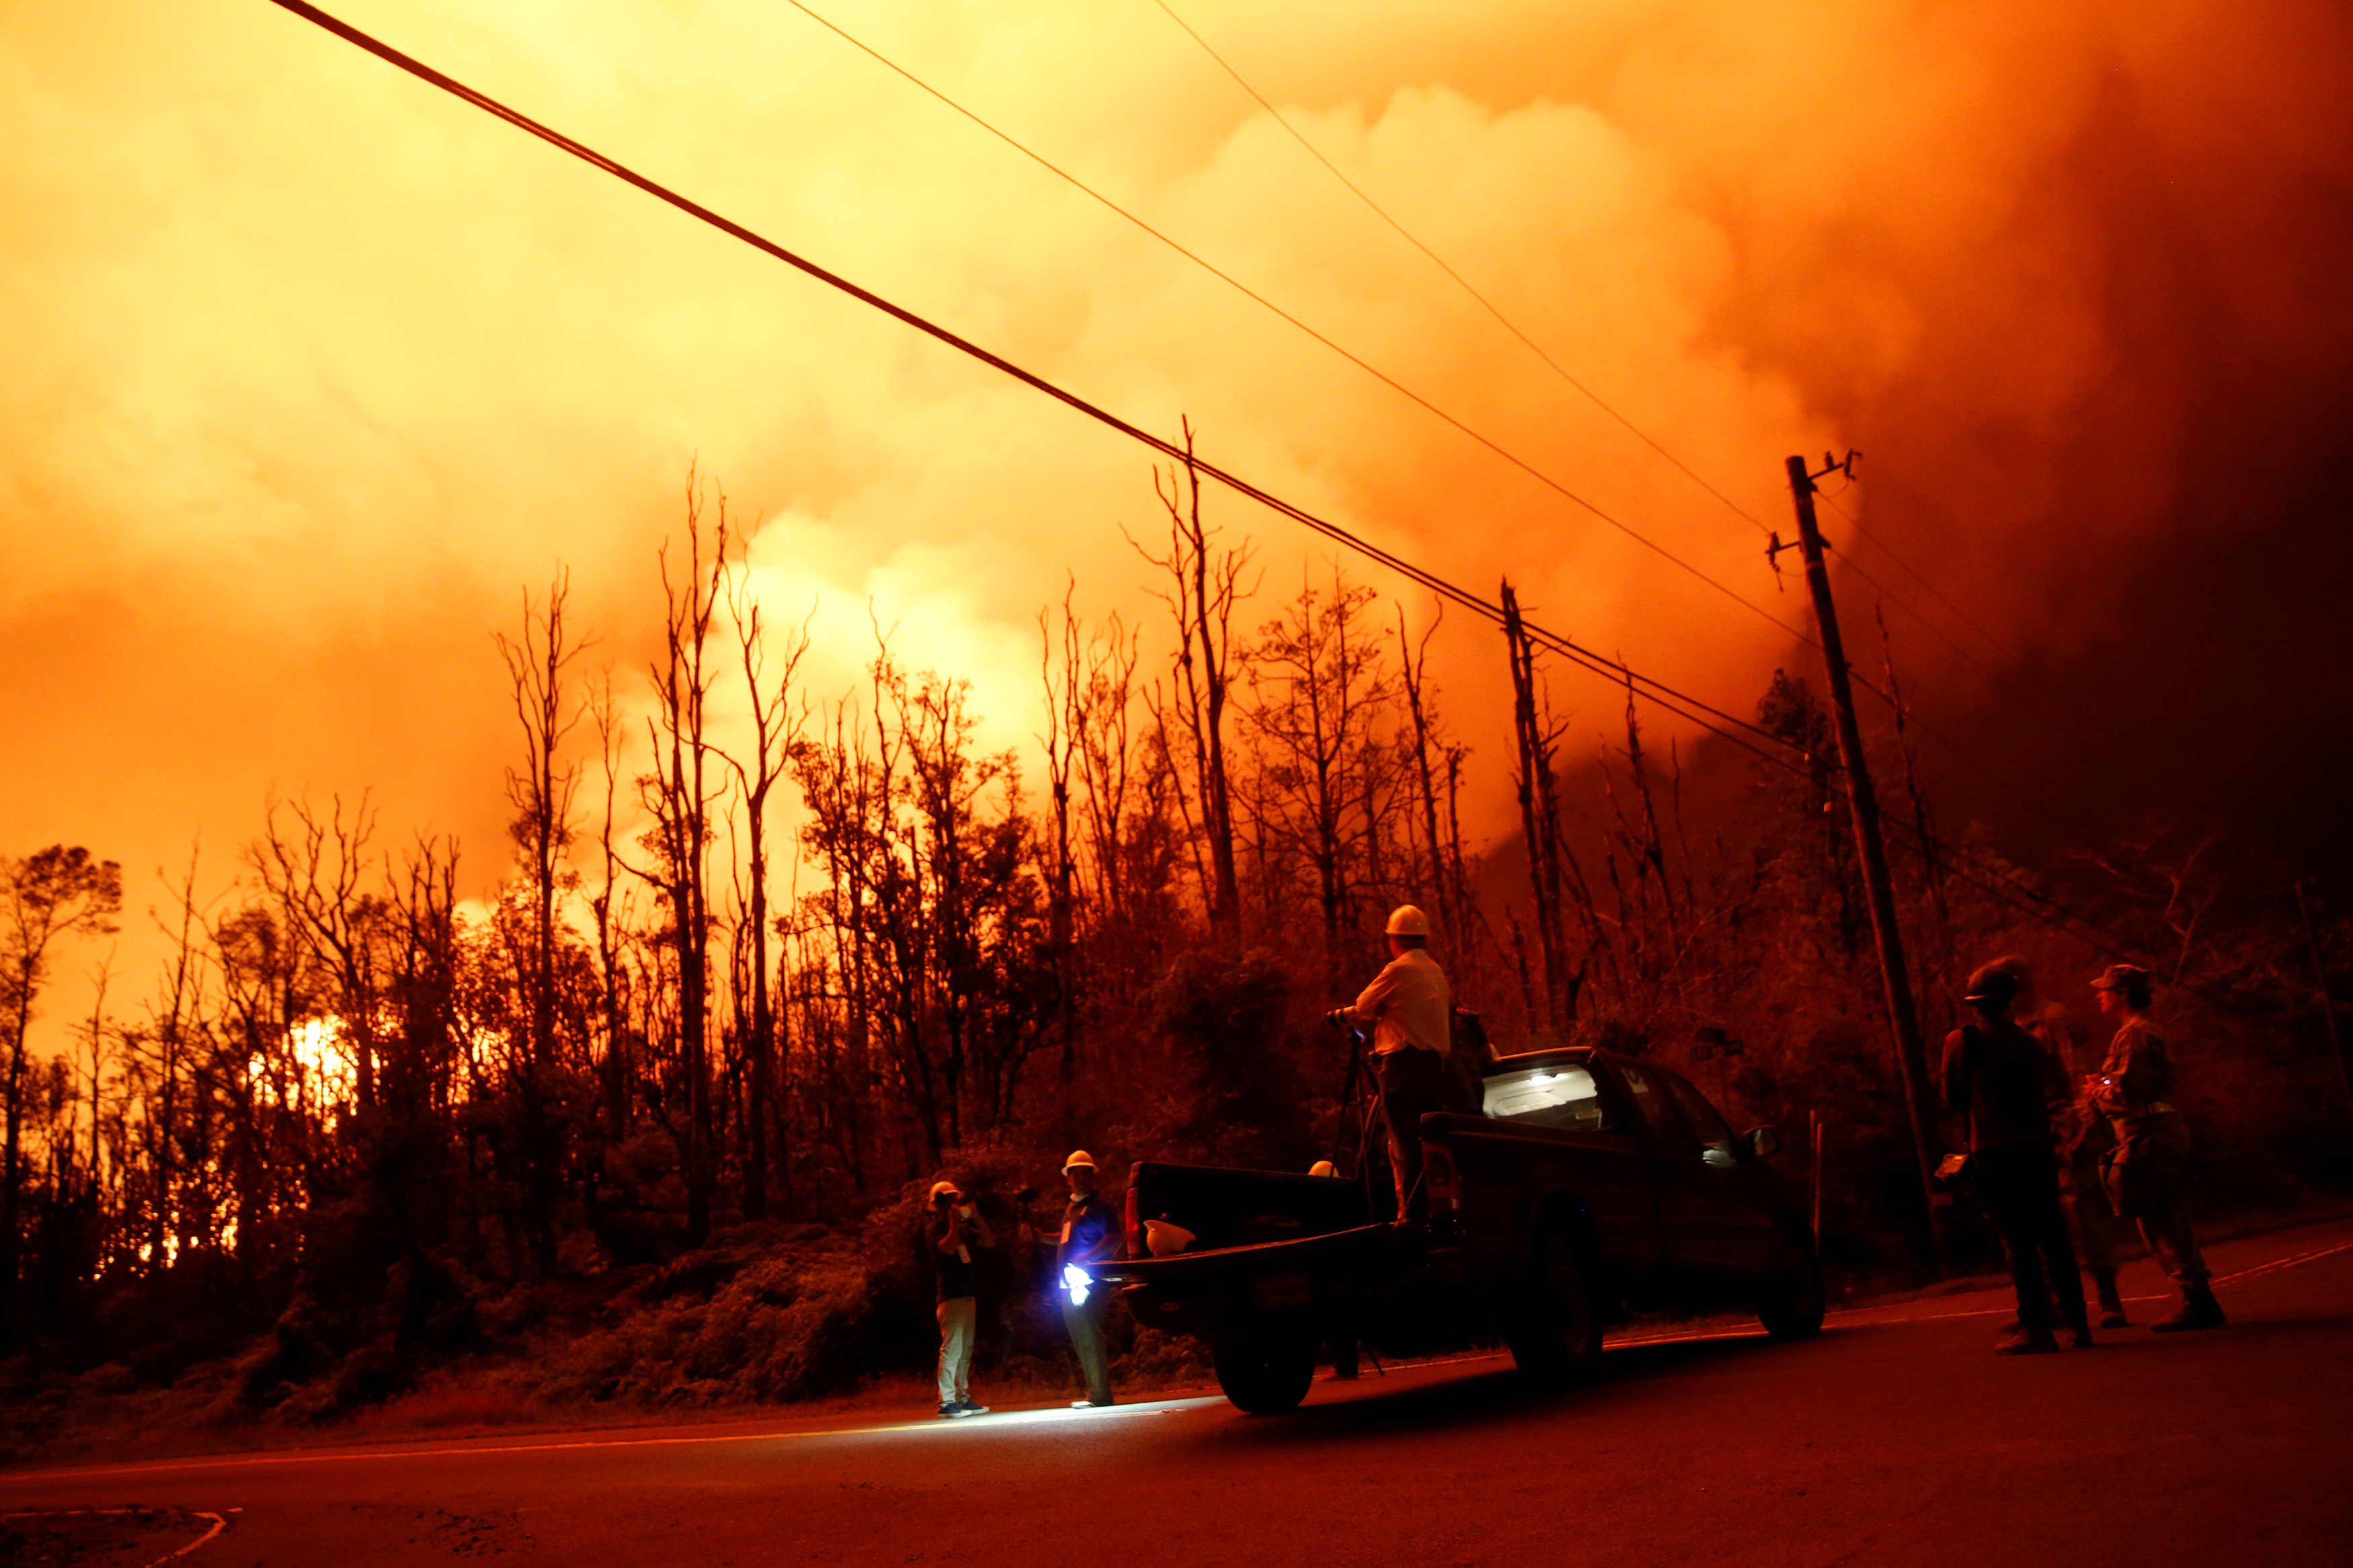 FILE PHOTO: Journalists and National Guard soldiers watch as lava erupts in Leilani Estates during ongoing eruptions of the Kilauea Volcano in Hawaii, U.S., June 9, 2018. REUTERS/Terray Sylvester